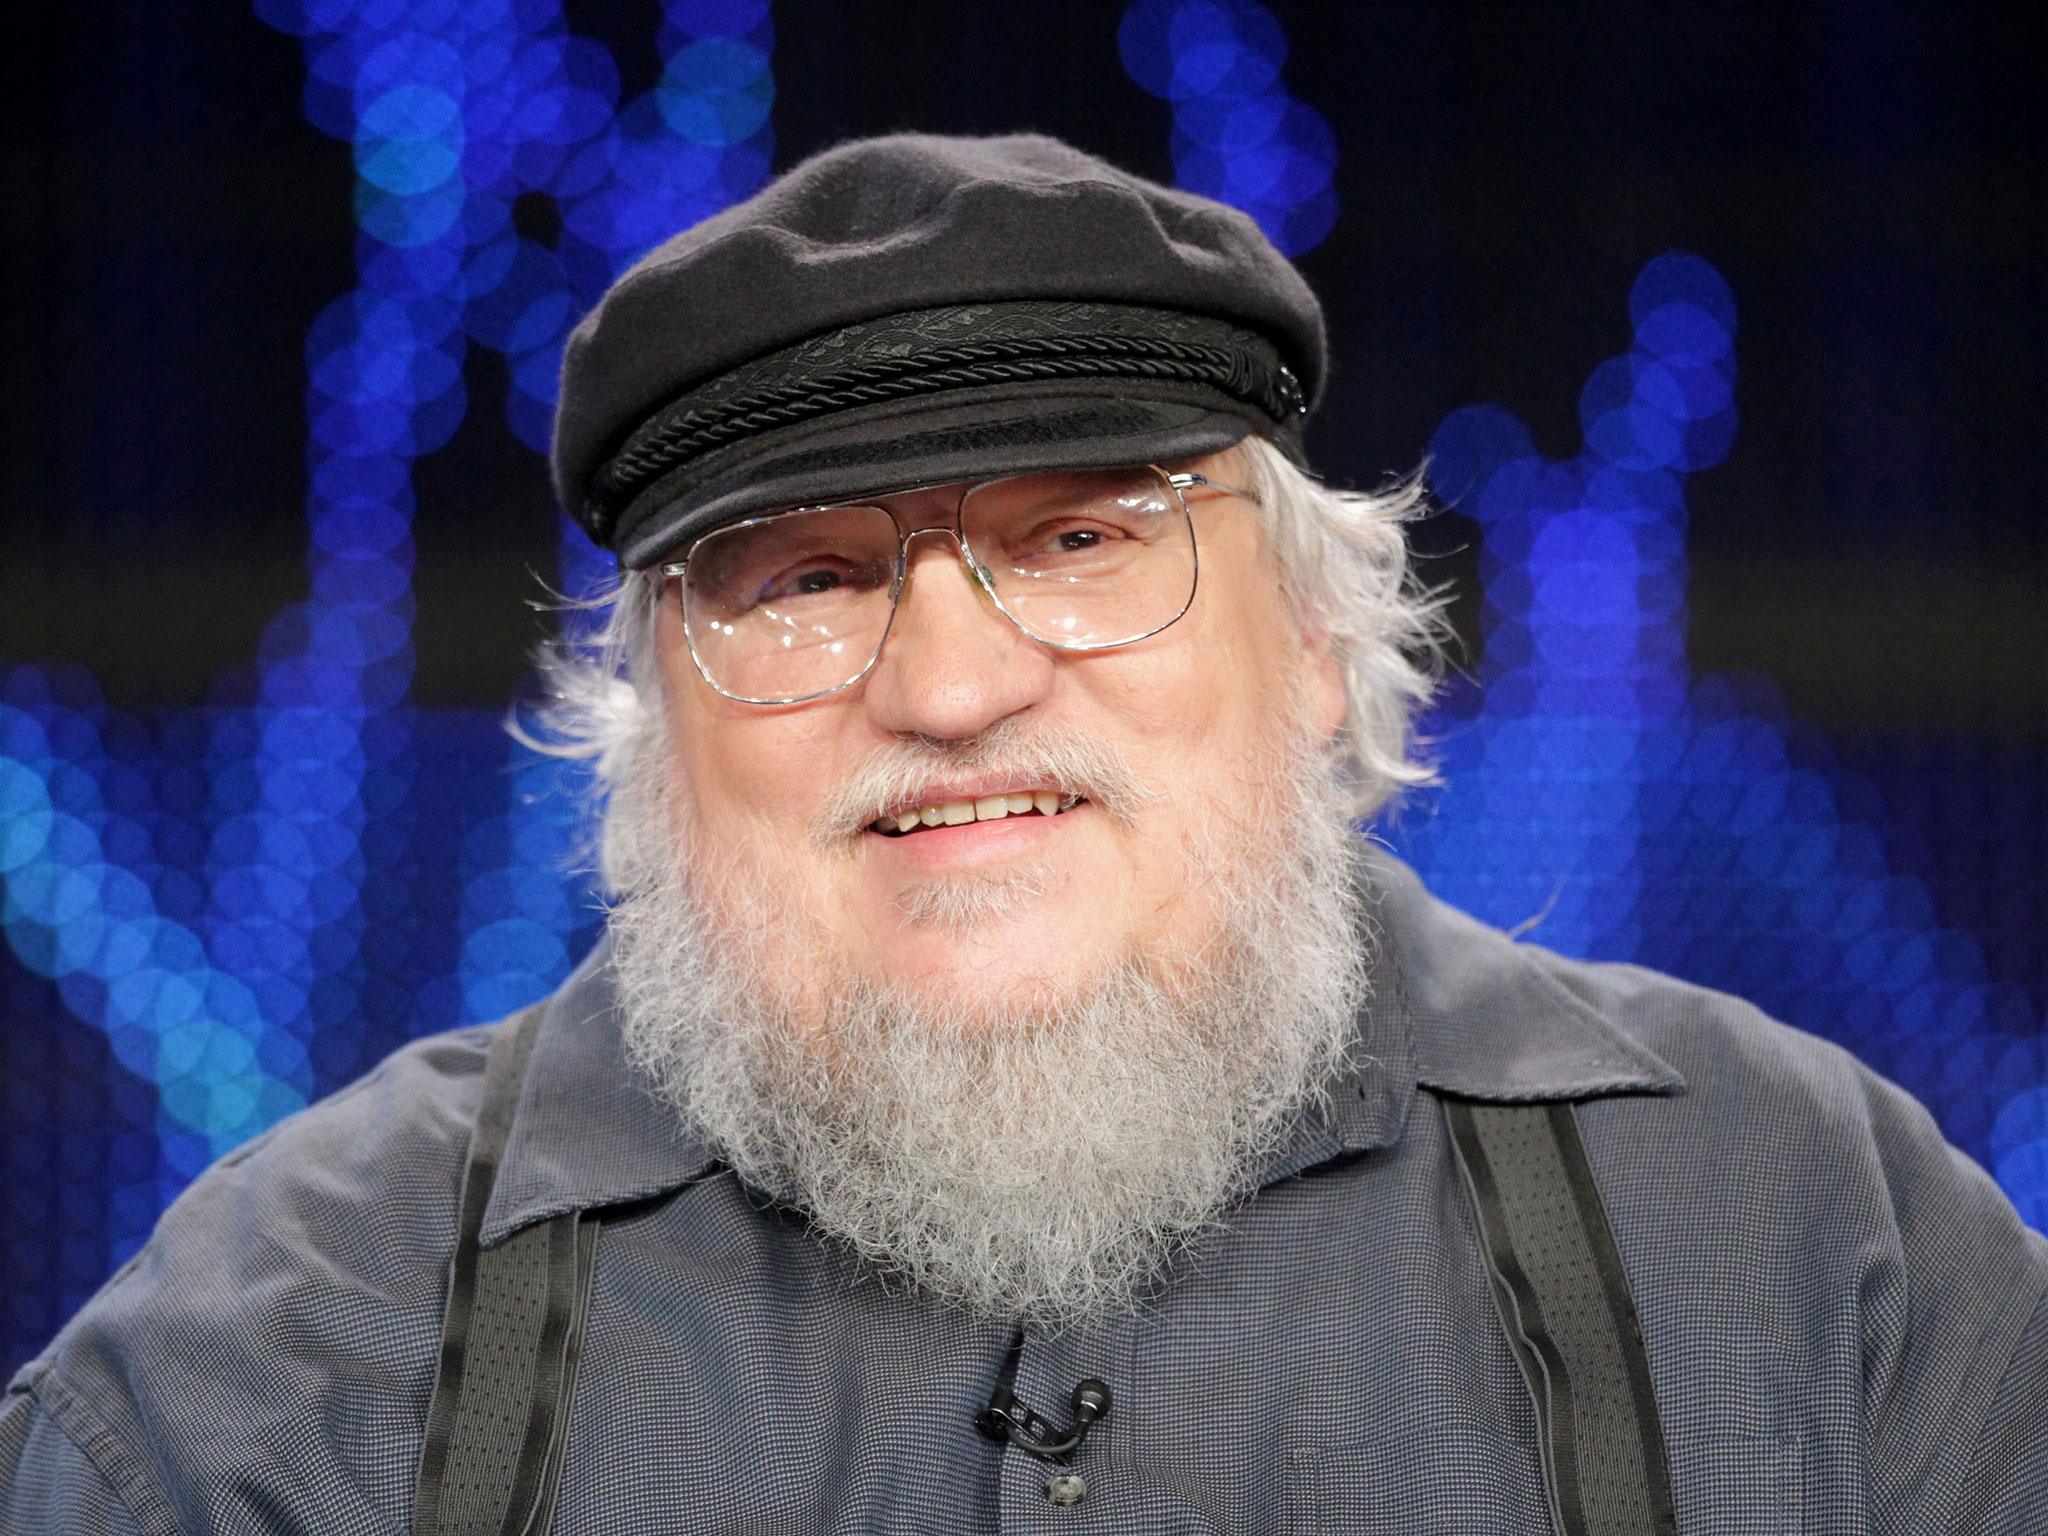 Game of Thrones Creator and 'Earth' Director George R.R Martin has yet to respond the Studios' decision.